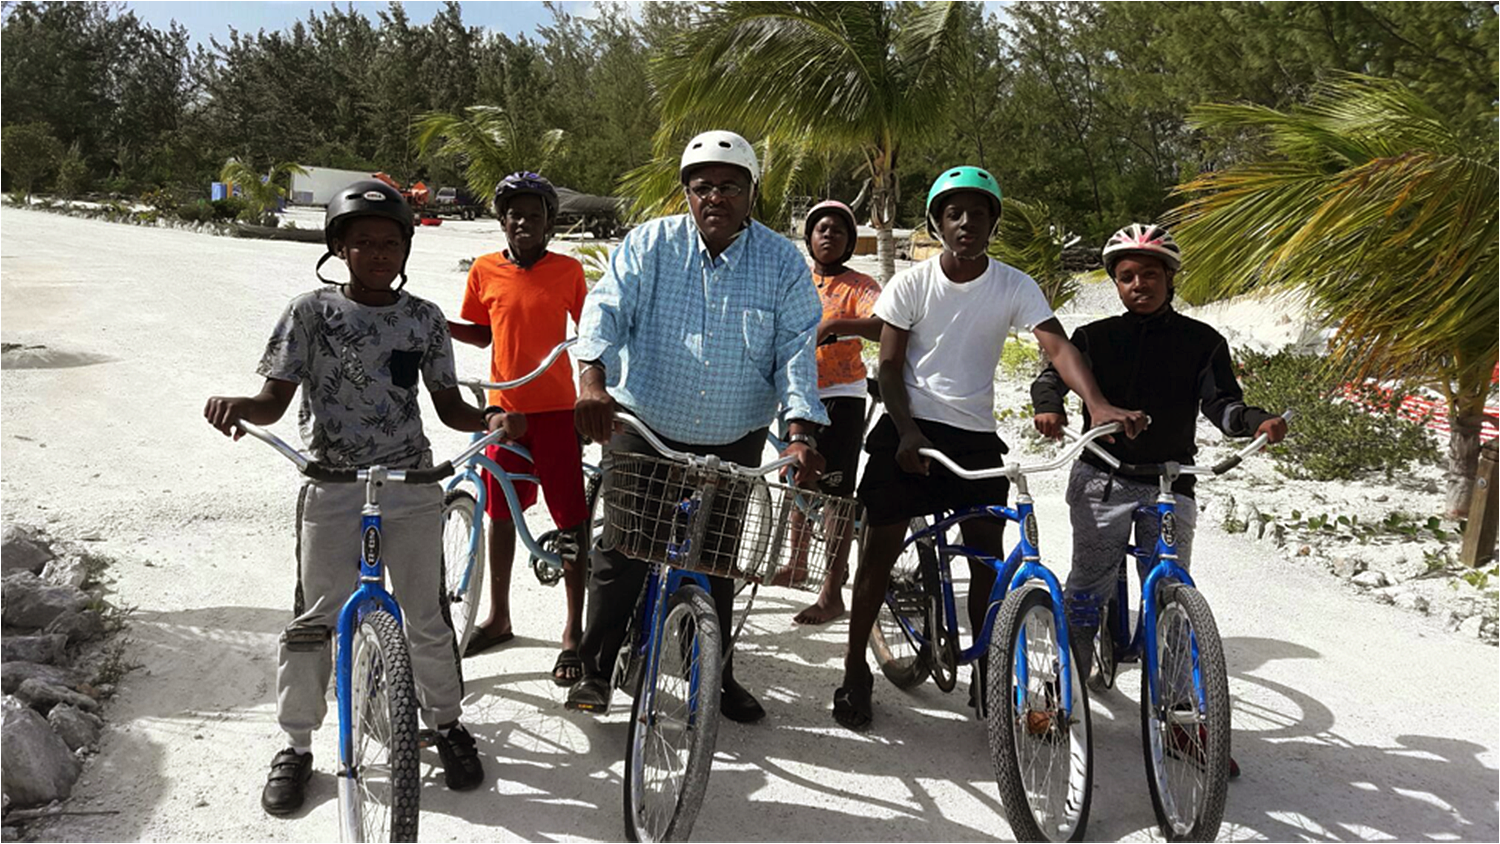 The Young Men's Leadership Program boys on a bike ride with Hon. Hank Johnson